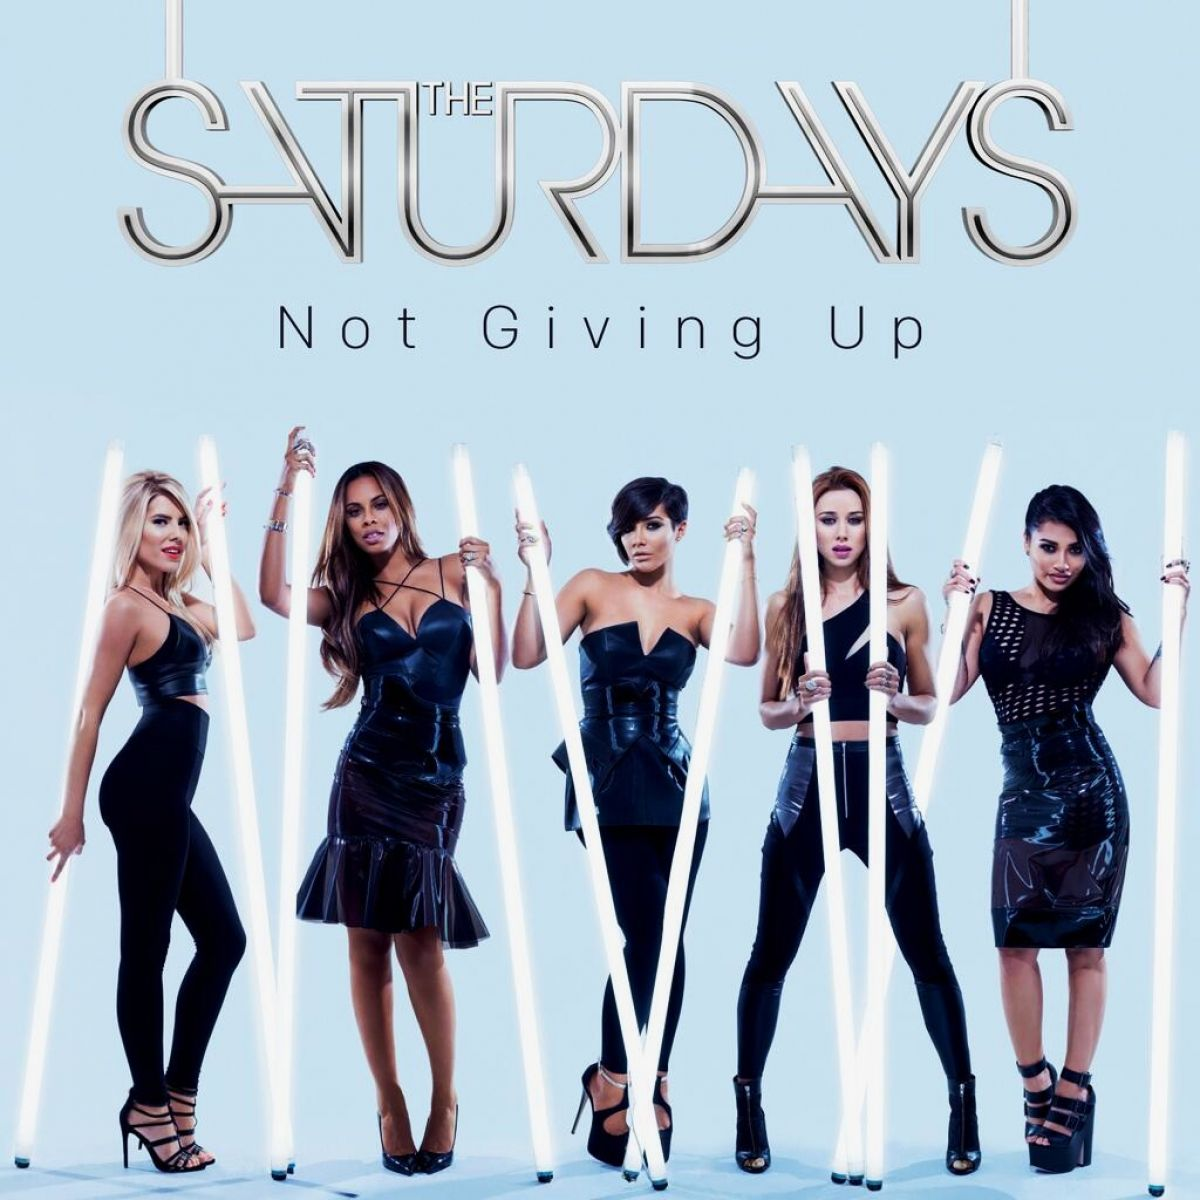 THE SATURDAYS Not Giving Up Album Cover